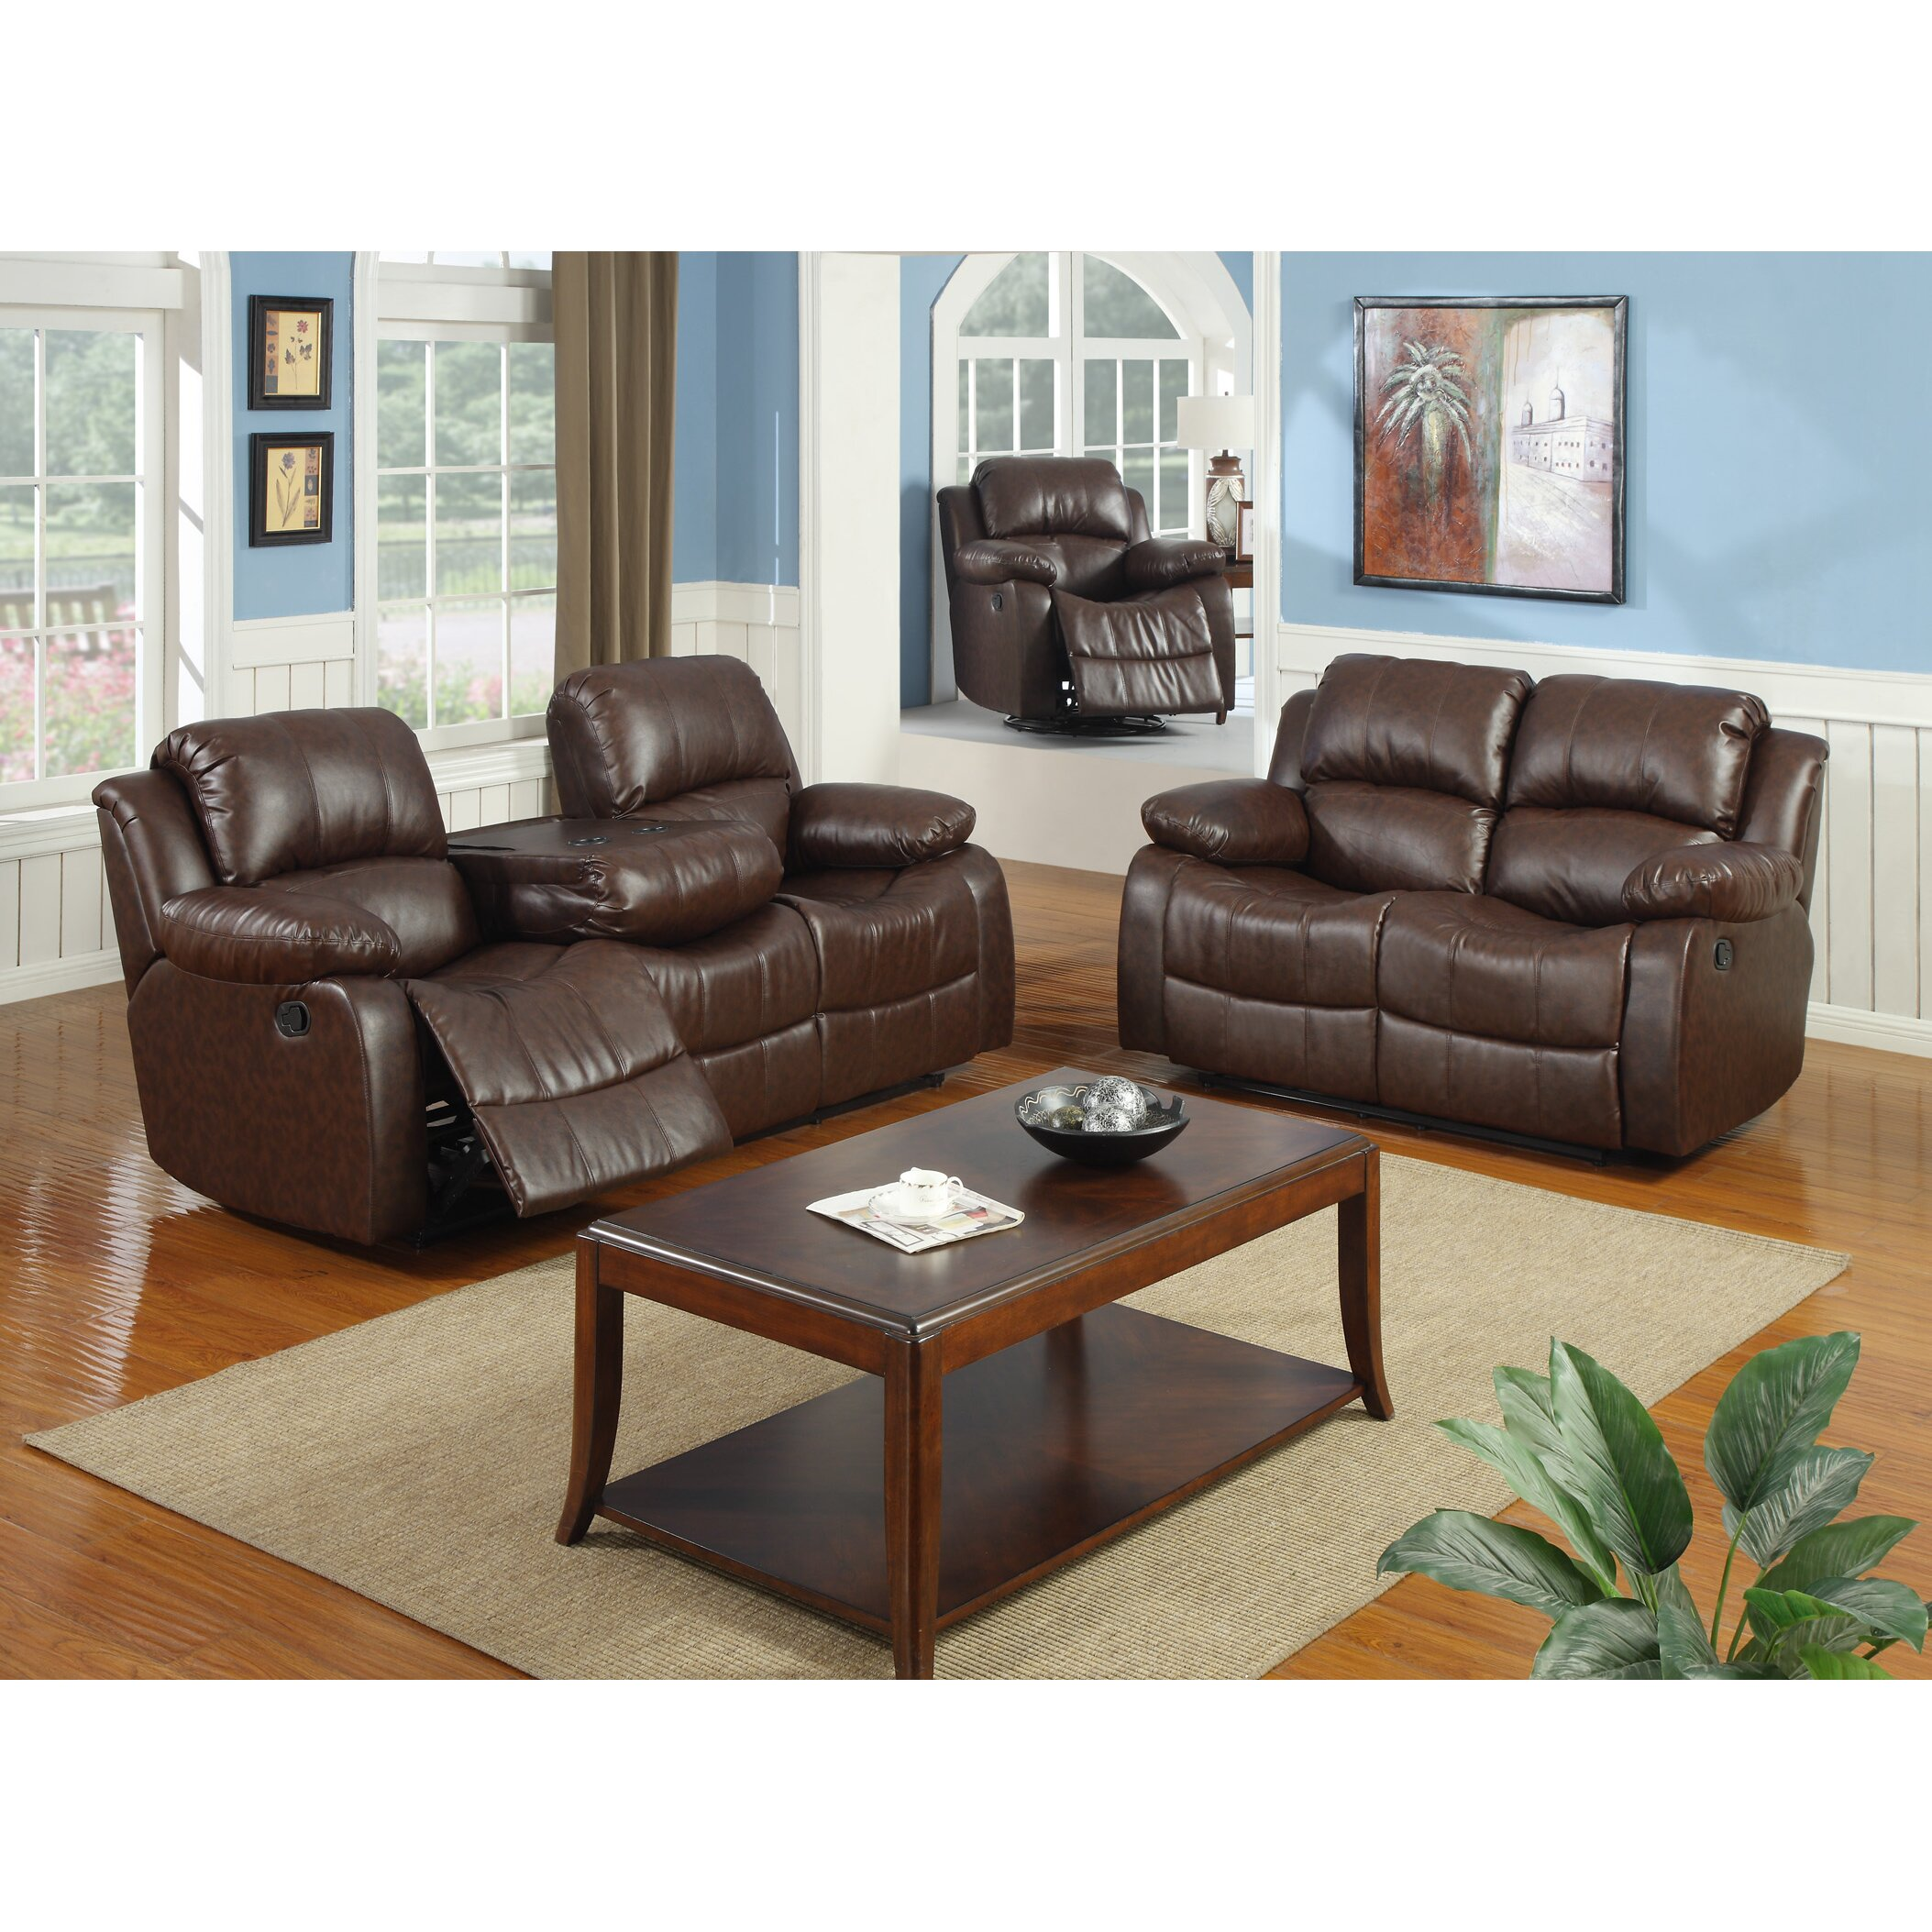 Best quality furniture bonded leather 3 piece recliner for Apartment furniture sets